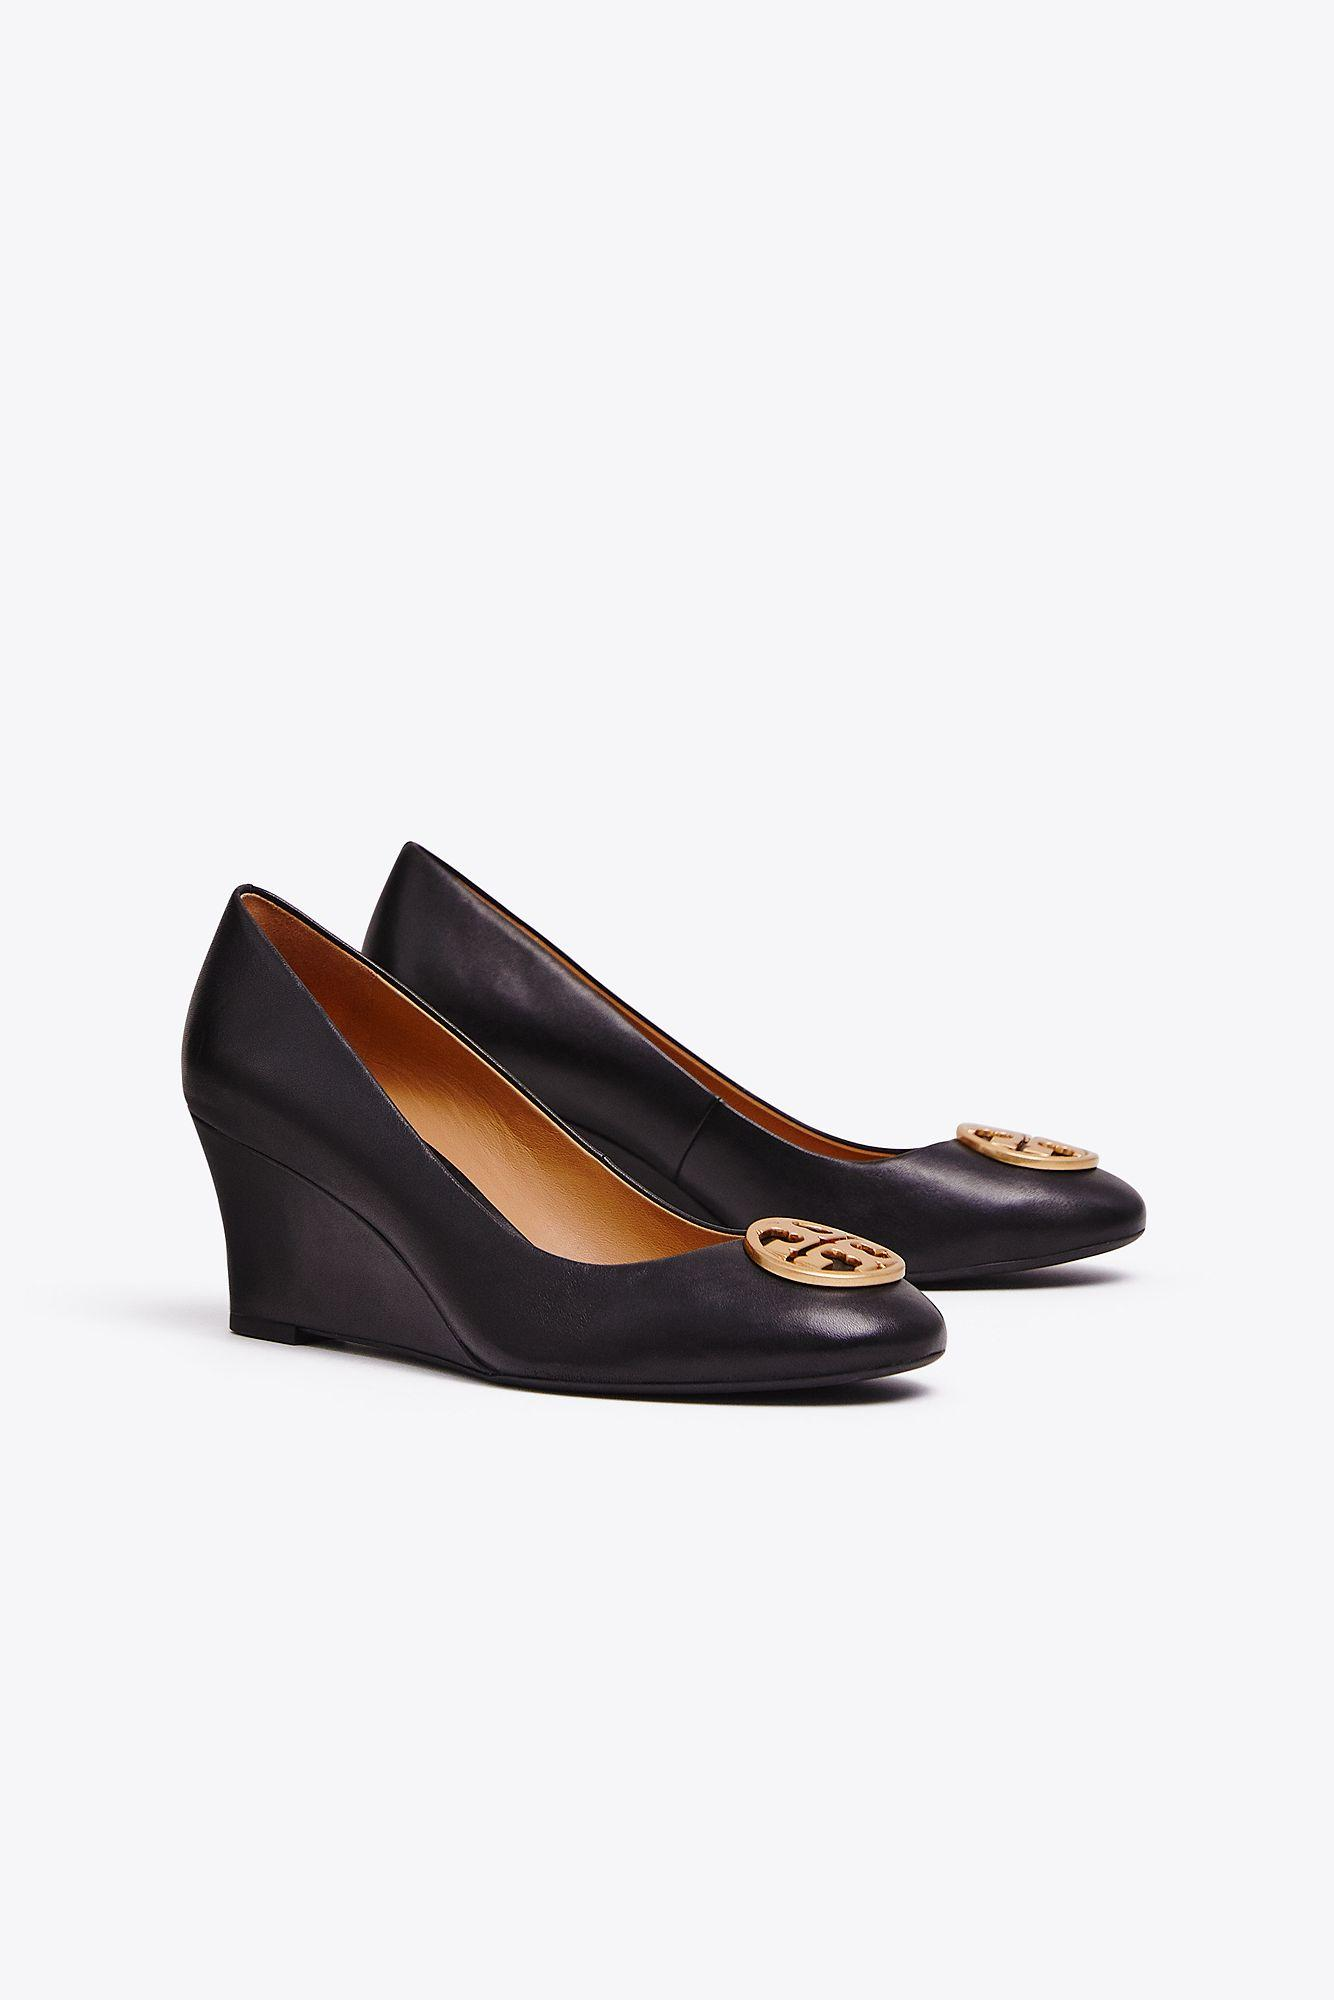 f1c7be2d31 Tory Burch Chelsea Wedges in Black - Save 2% - Lyst